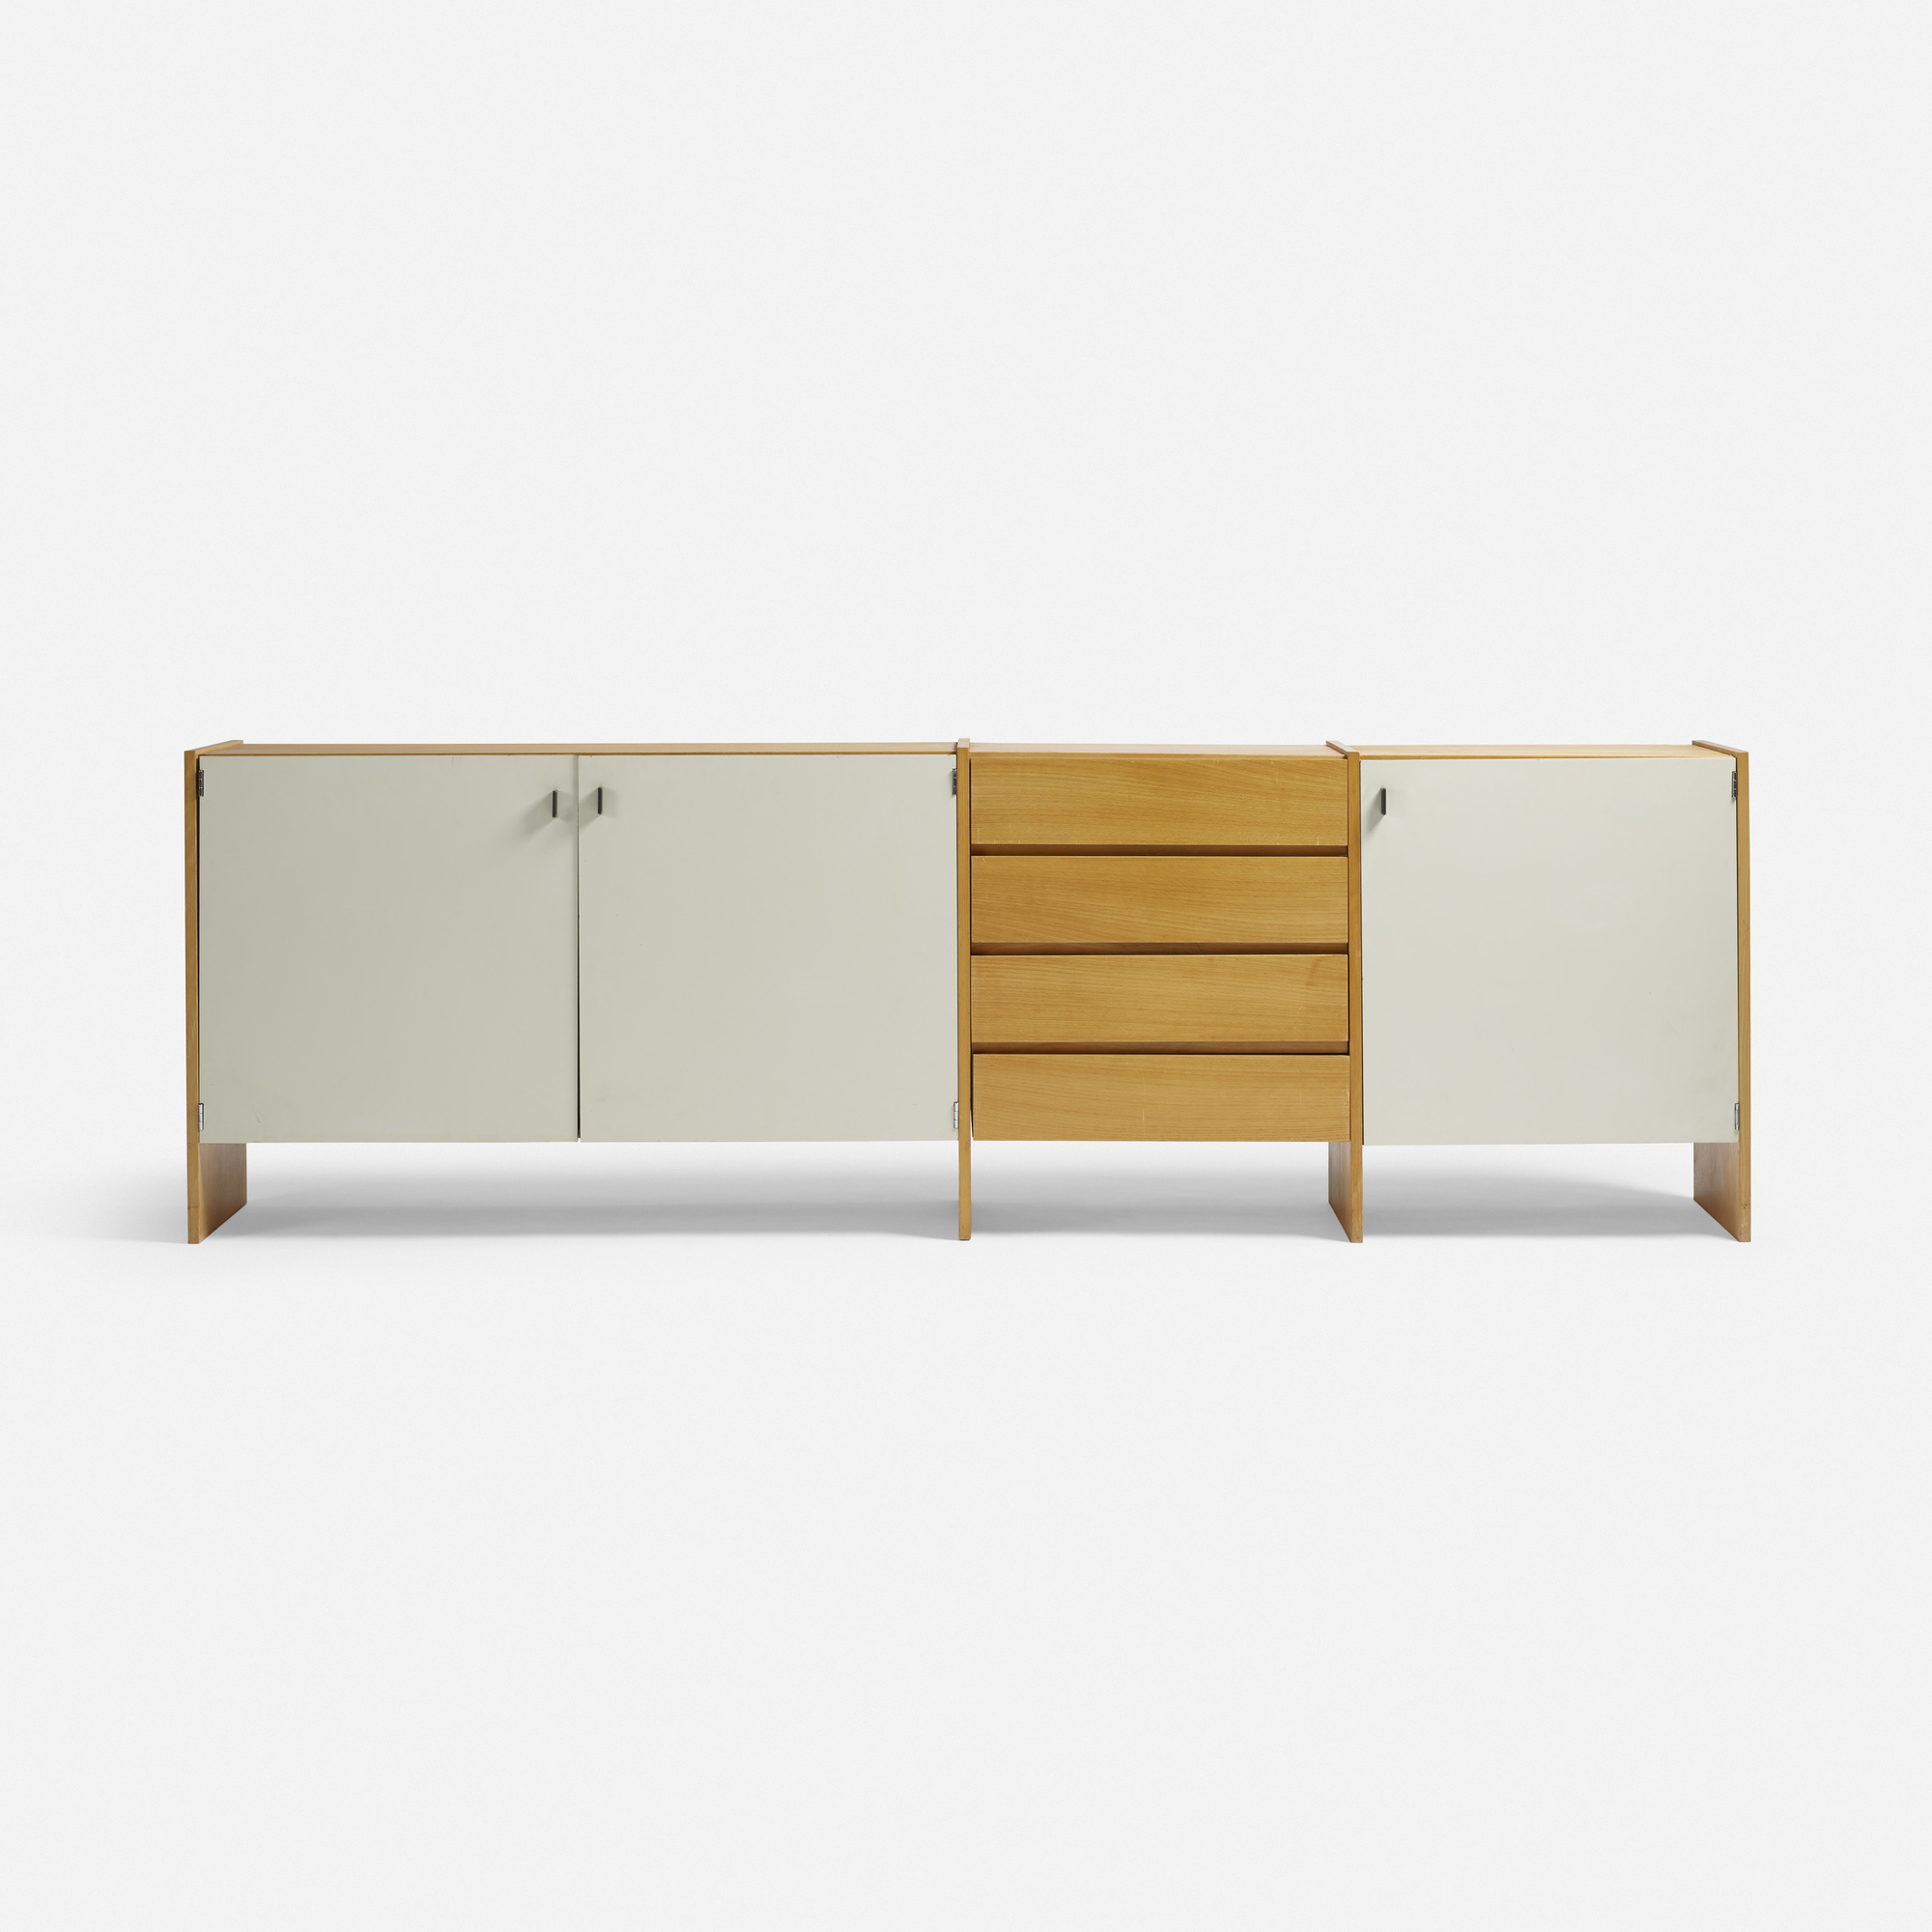 Prototype RZ 57 cabinet, 1957 by Dieter Rams. Image courtesy of Wright auction house